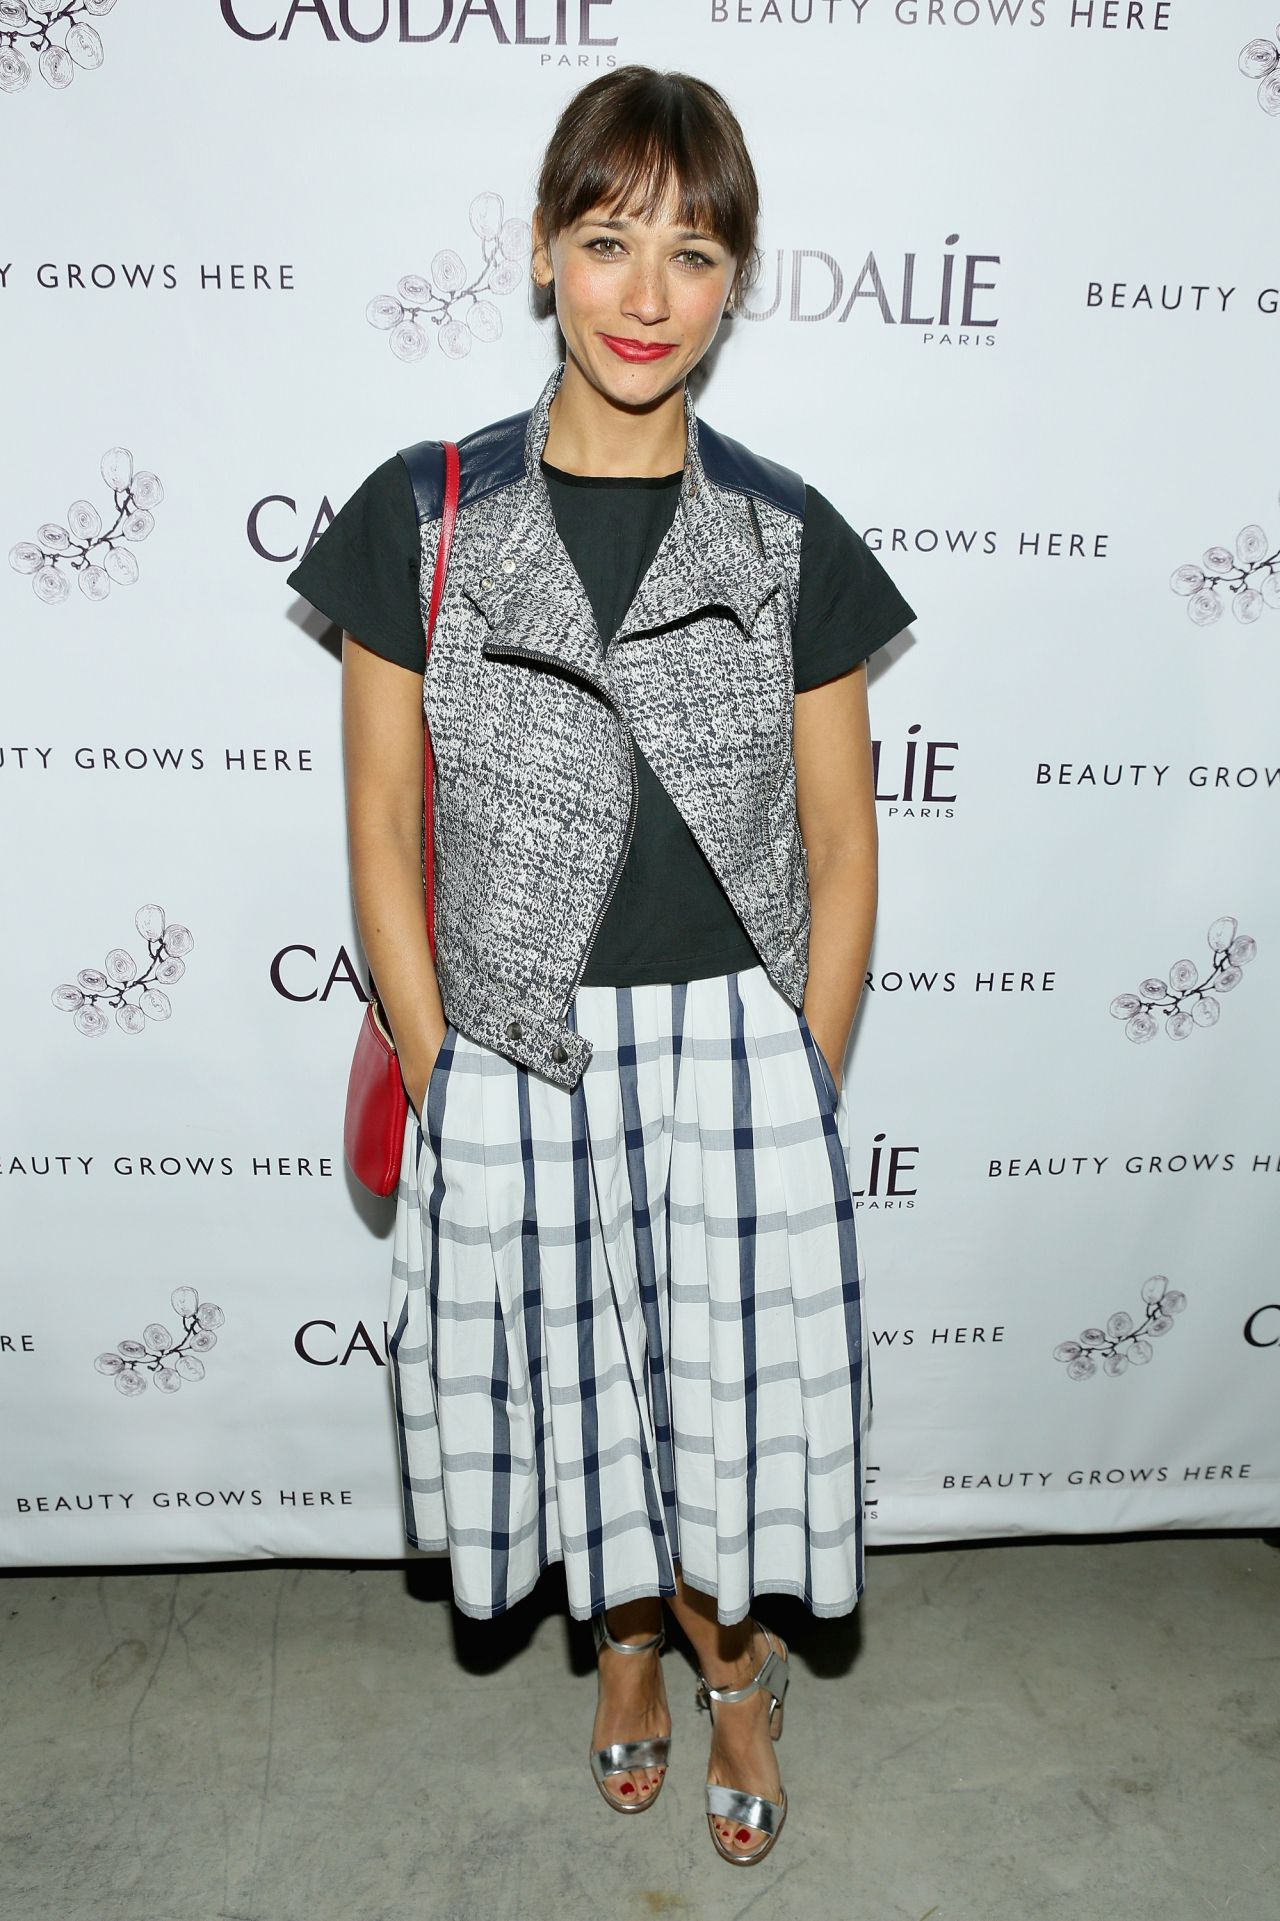 Rashida Jones at the Caudalie Boutique Spa Grand Opening - March 2014